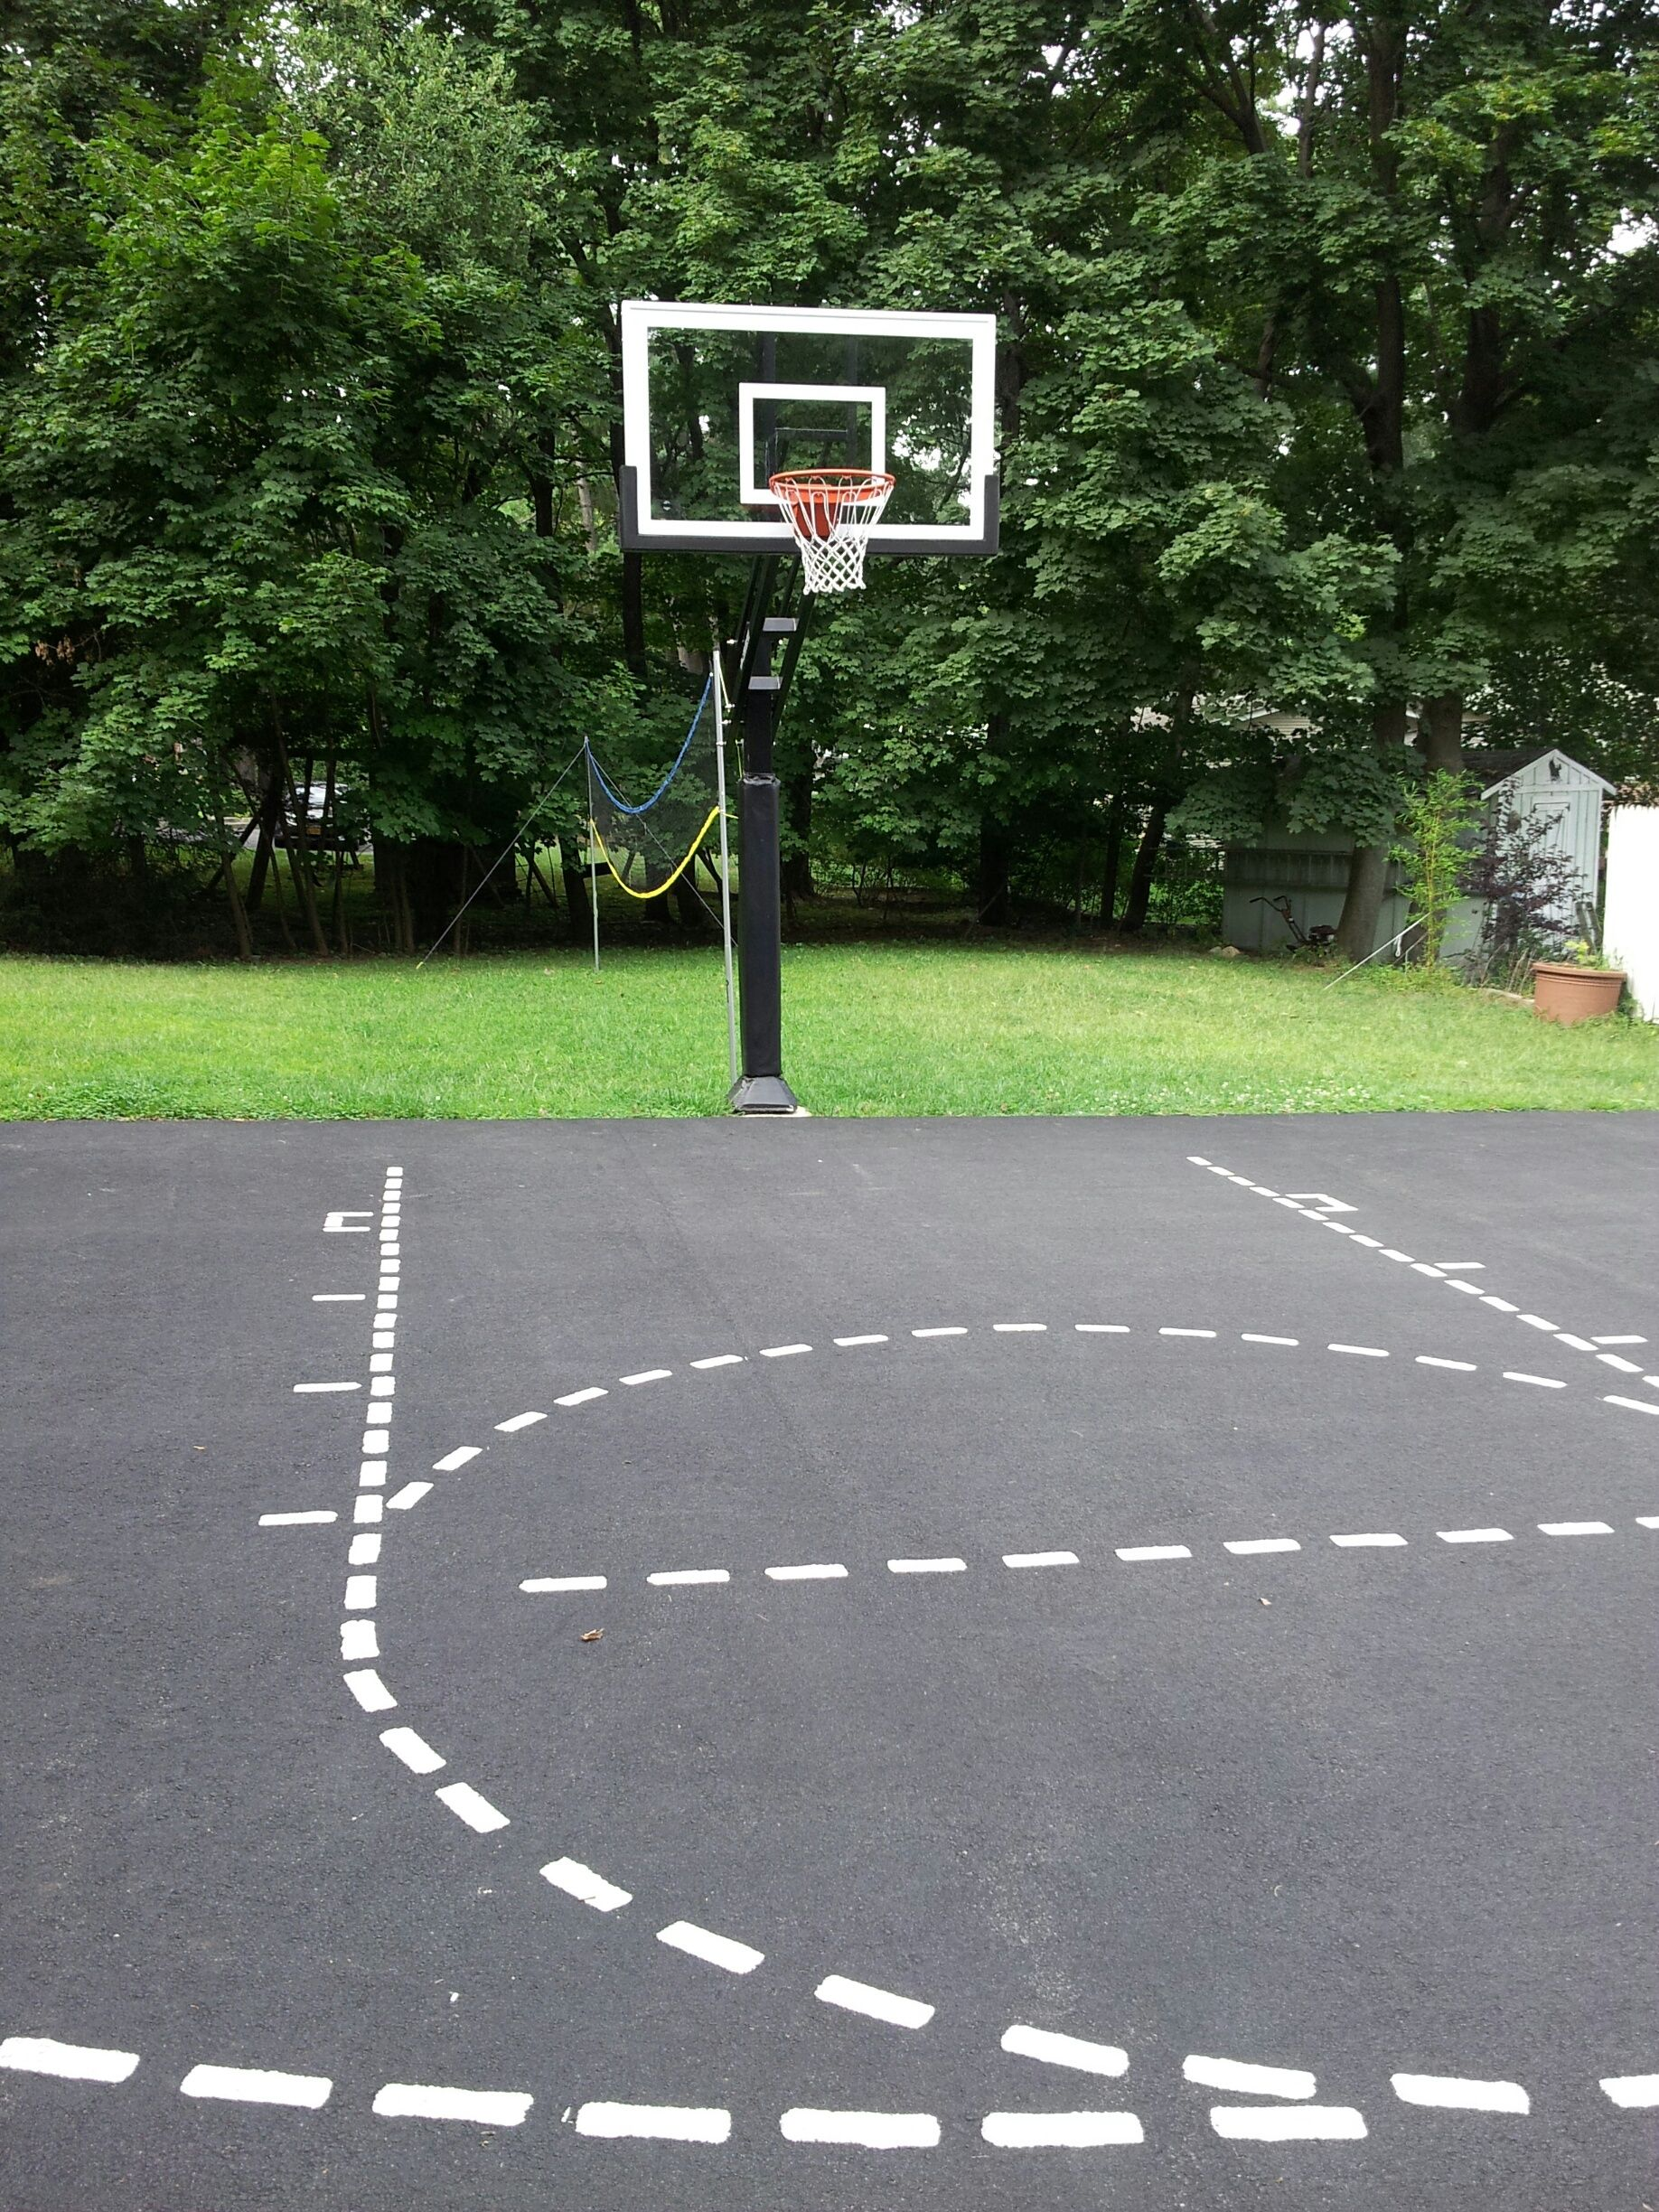 This Pro Dunk Gold Basketball system stands tall over a